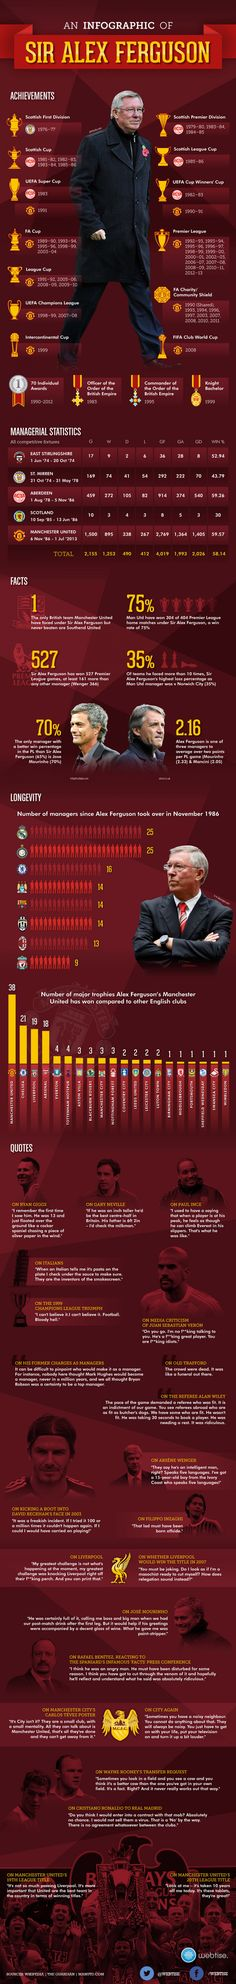 Sir Alex Ferguson Retires from Manchester United Football club after 26 years of being a manager. Manchester United Wallpaper, Manchester United Team, Official Manchester United Website, Football Is Life, Best Football Team, World Football, Sir Alex Ferguson, Old Trafford, Sports Pictures